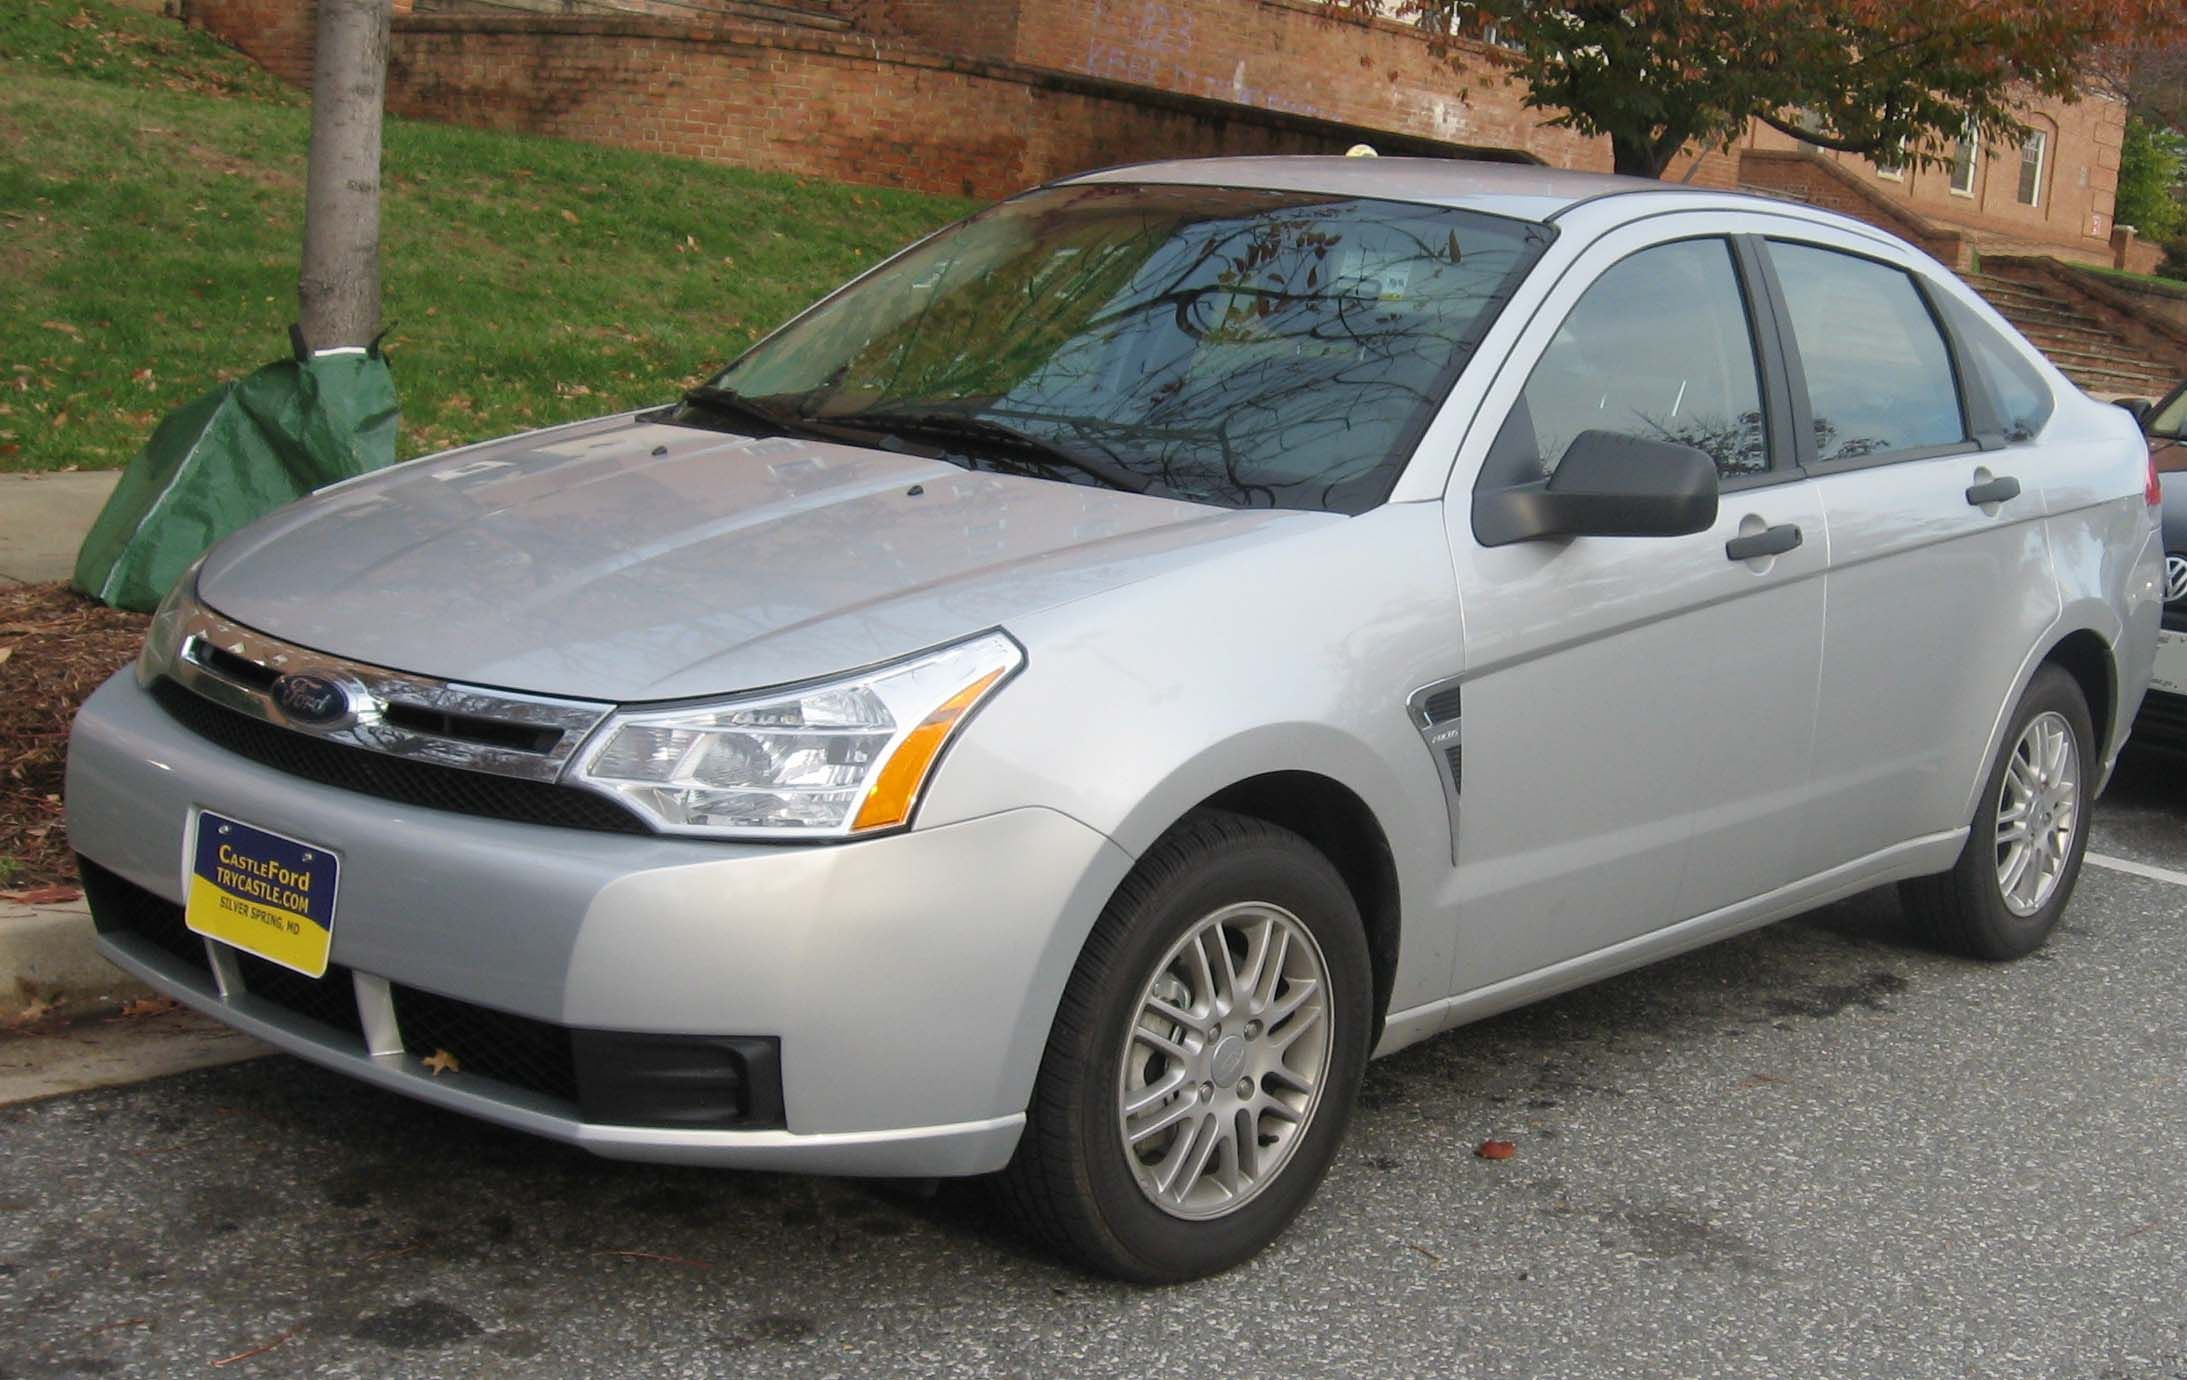 2008 Ford Focus Starla Has One Very Different To A Uk Focus Of The Same Year Though Ford Focus Ford Focus 2004 Ford